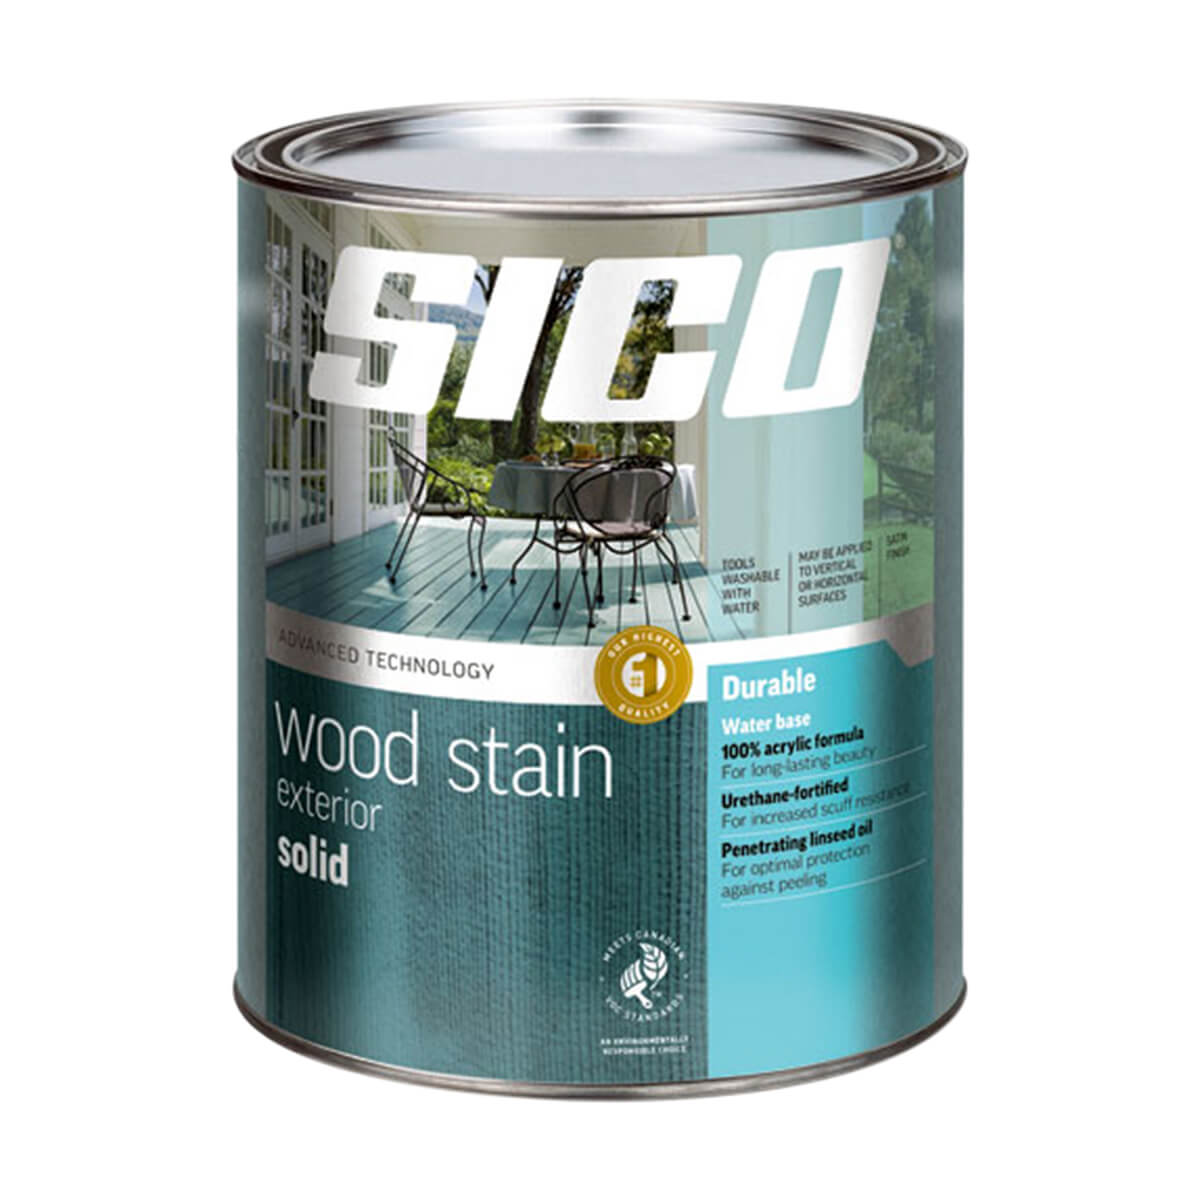 Sico Solid Exterior Stain White - 232-100 - 3.78 L